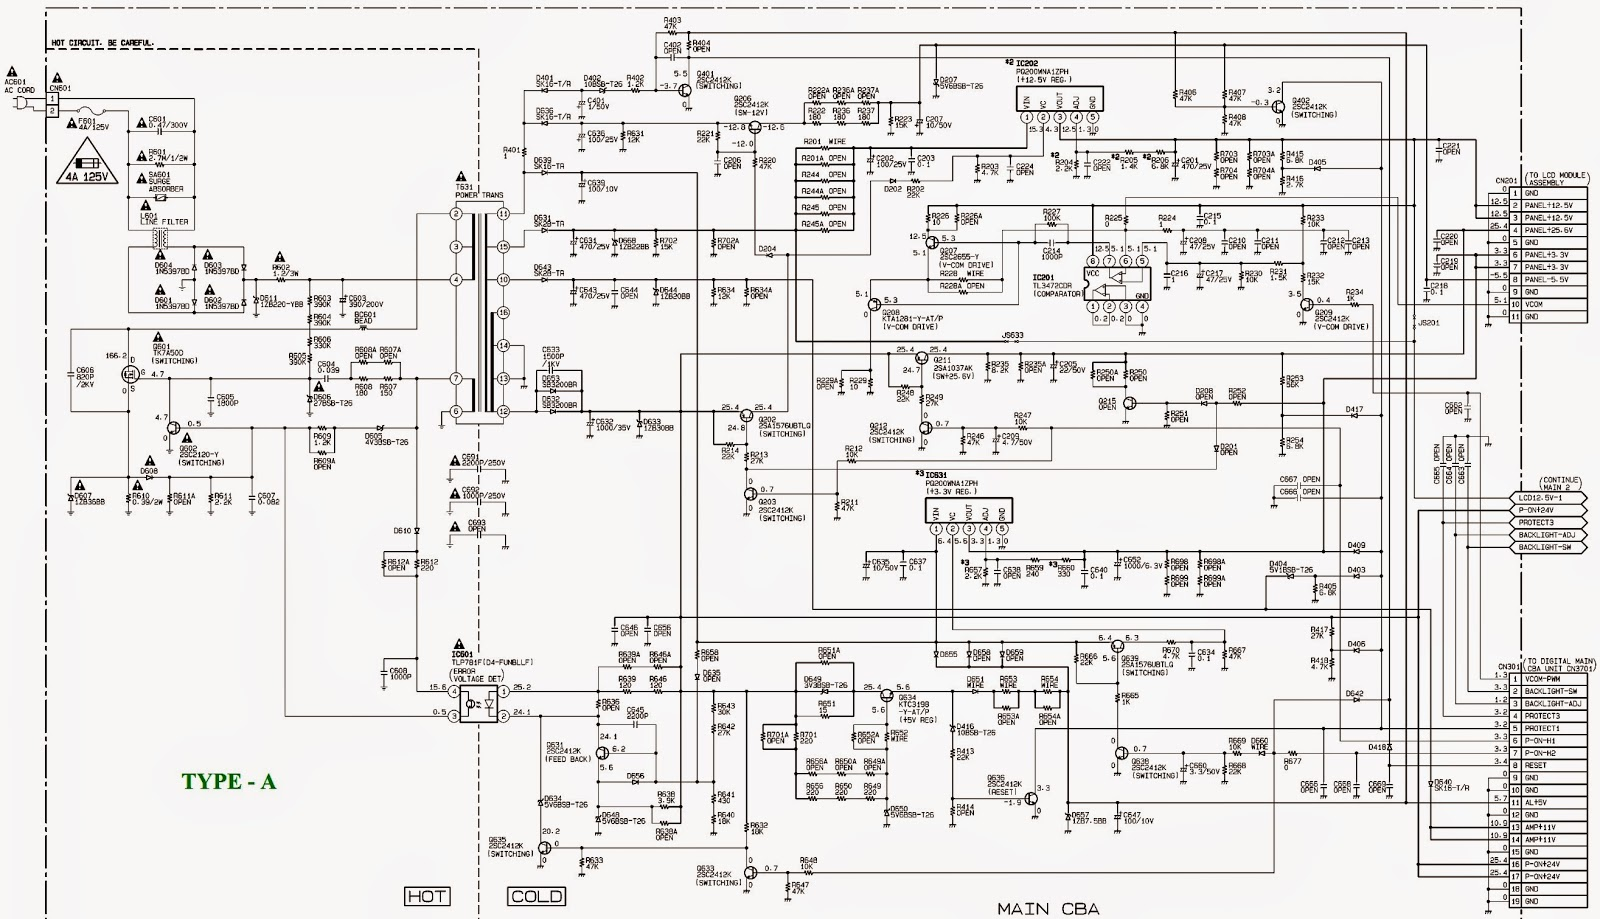 Wiring Diagram For Sanyo Tv Serial Number B